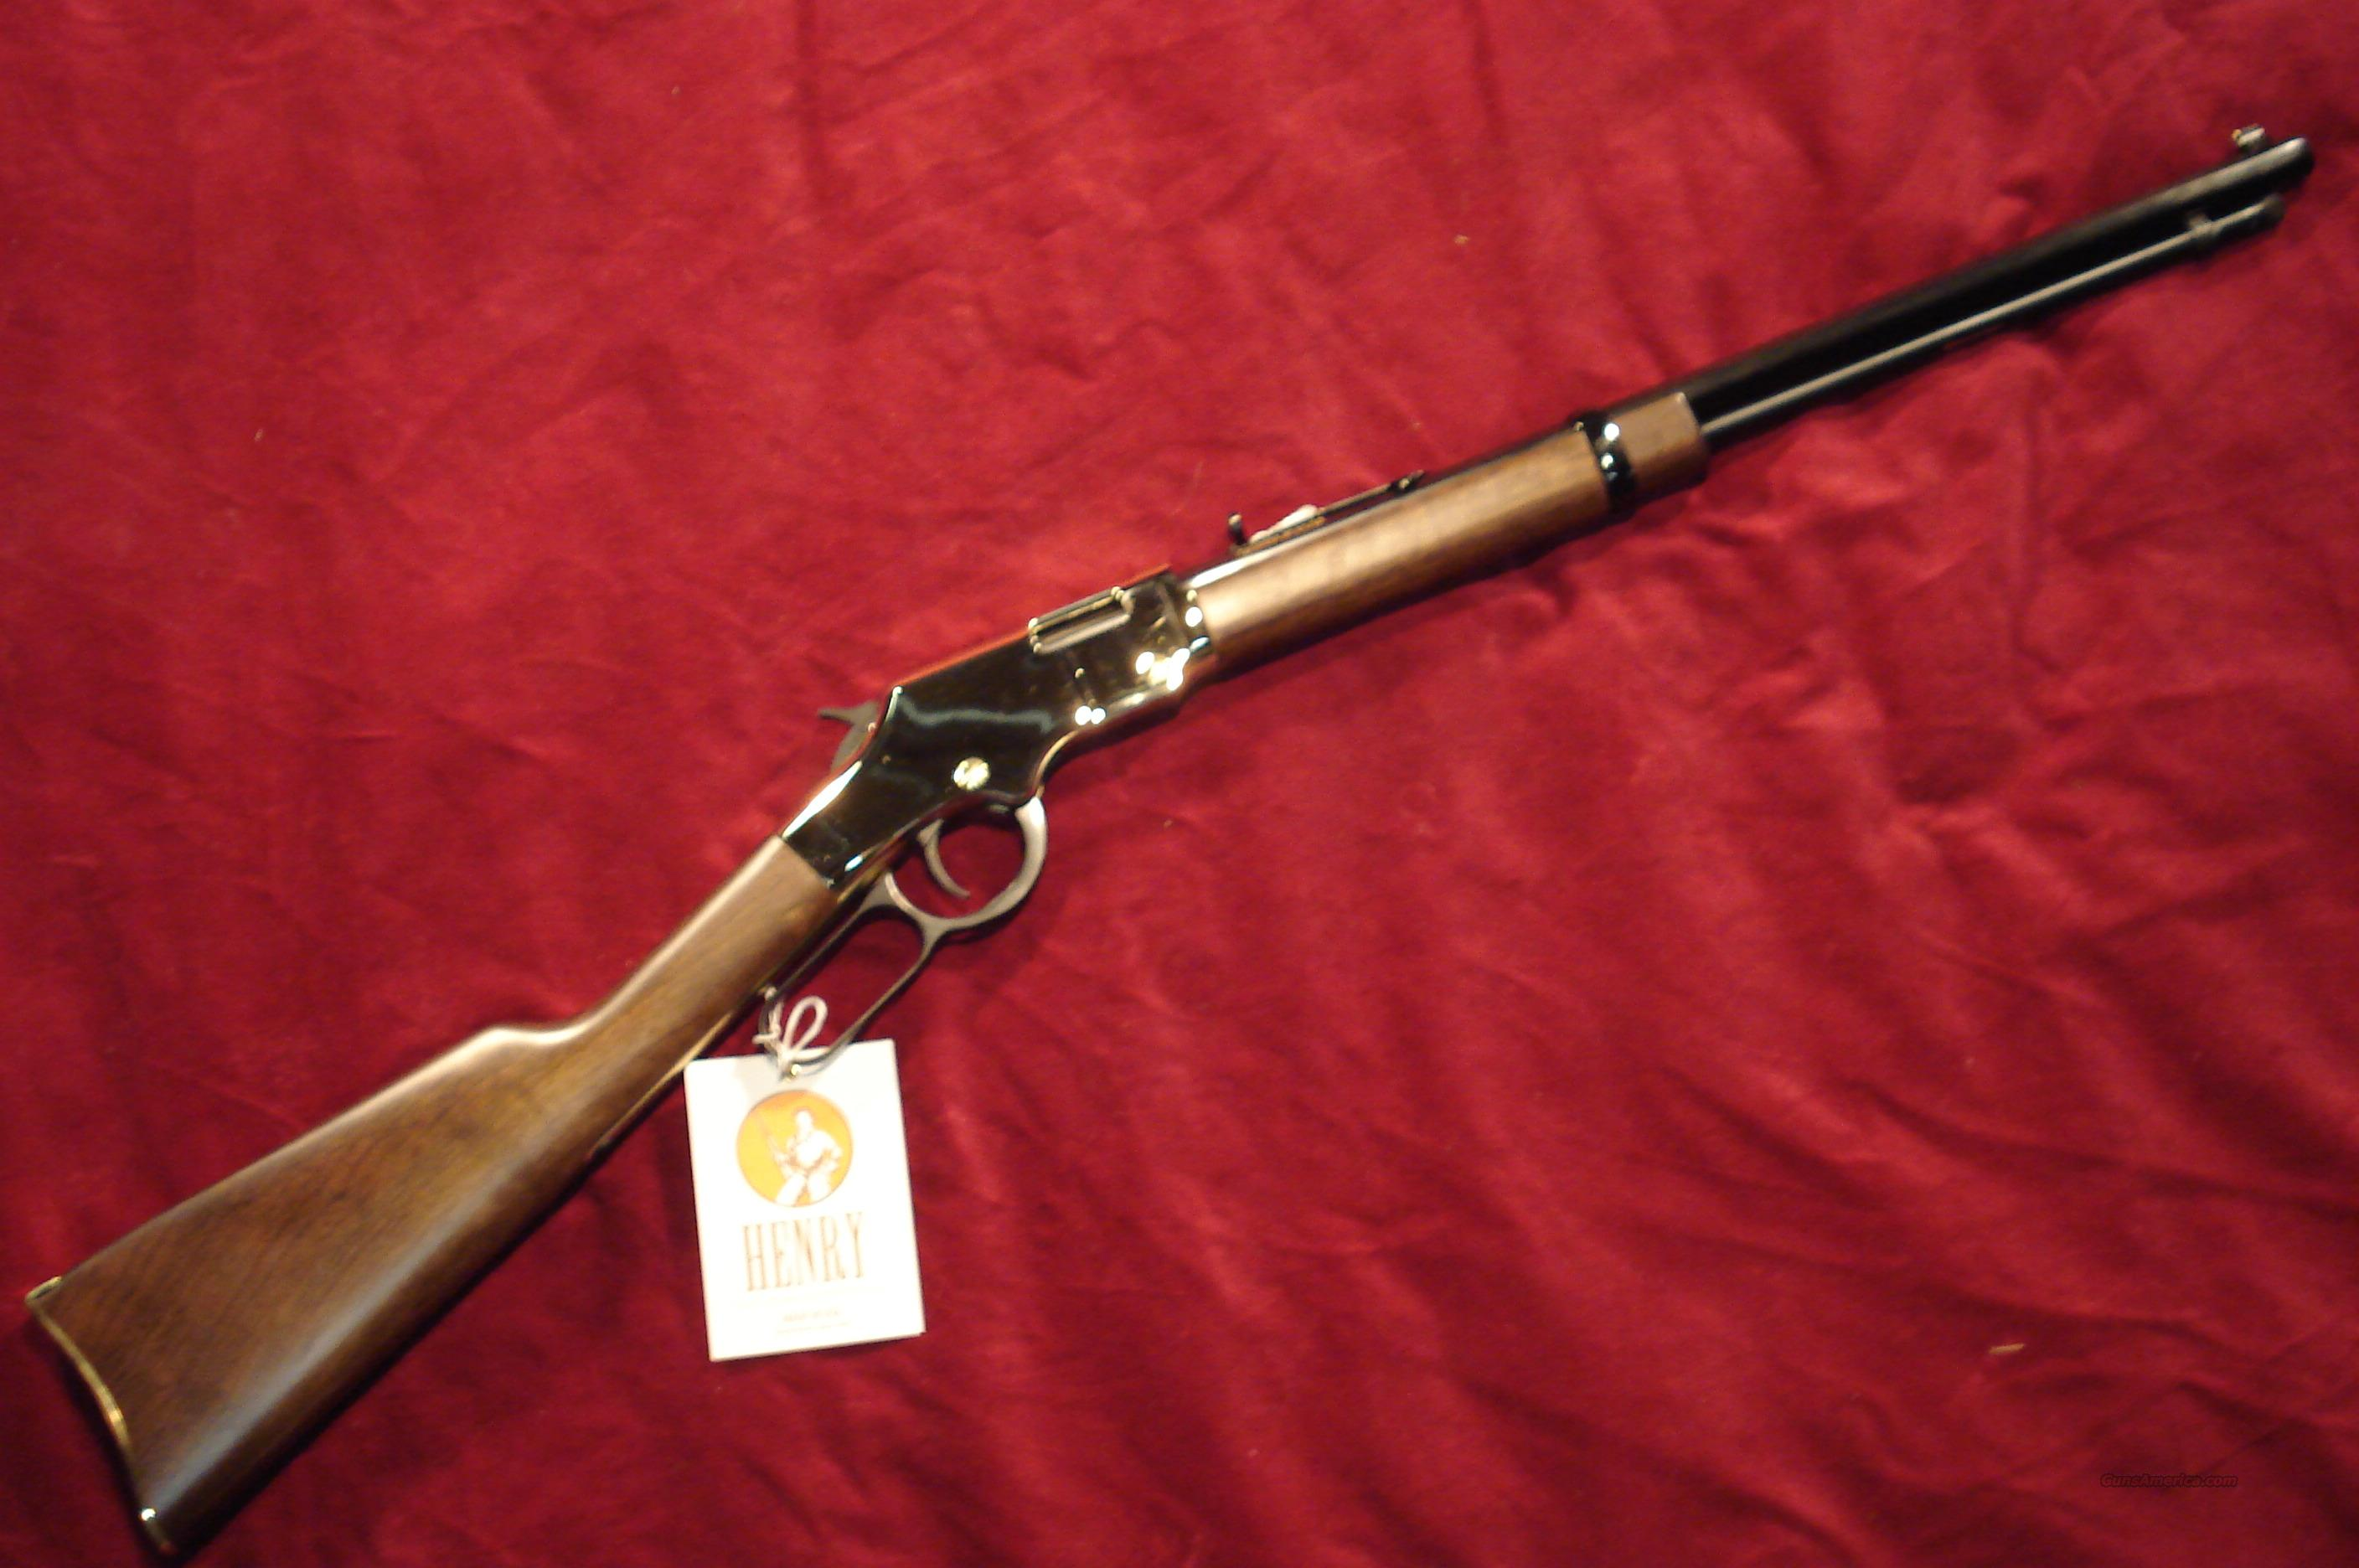 HENRY GOLDEN BOY 22CAL NEW  (H004)  Guns > Rifles > Henry Rifle Company